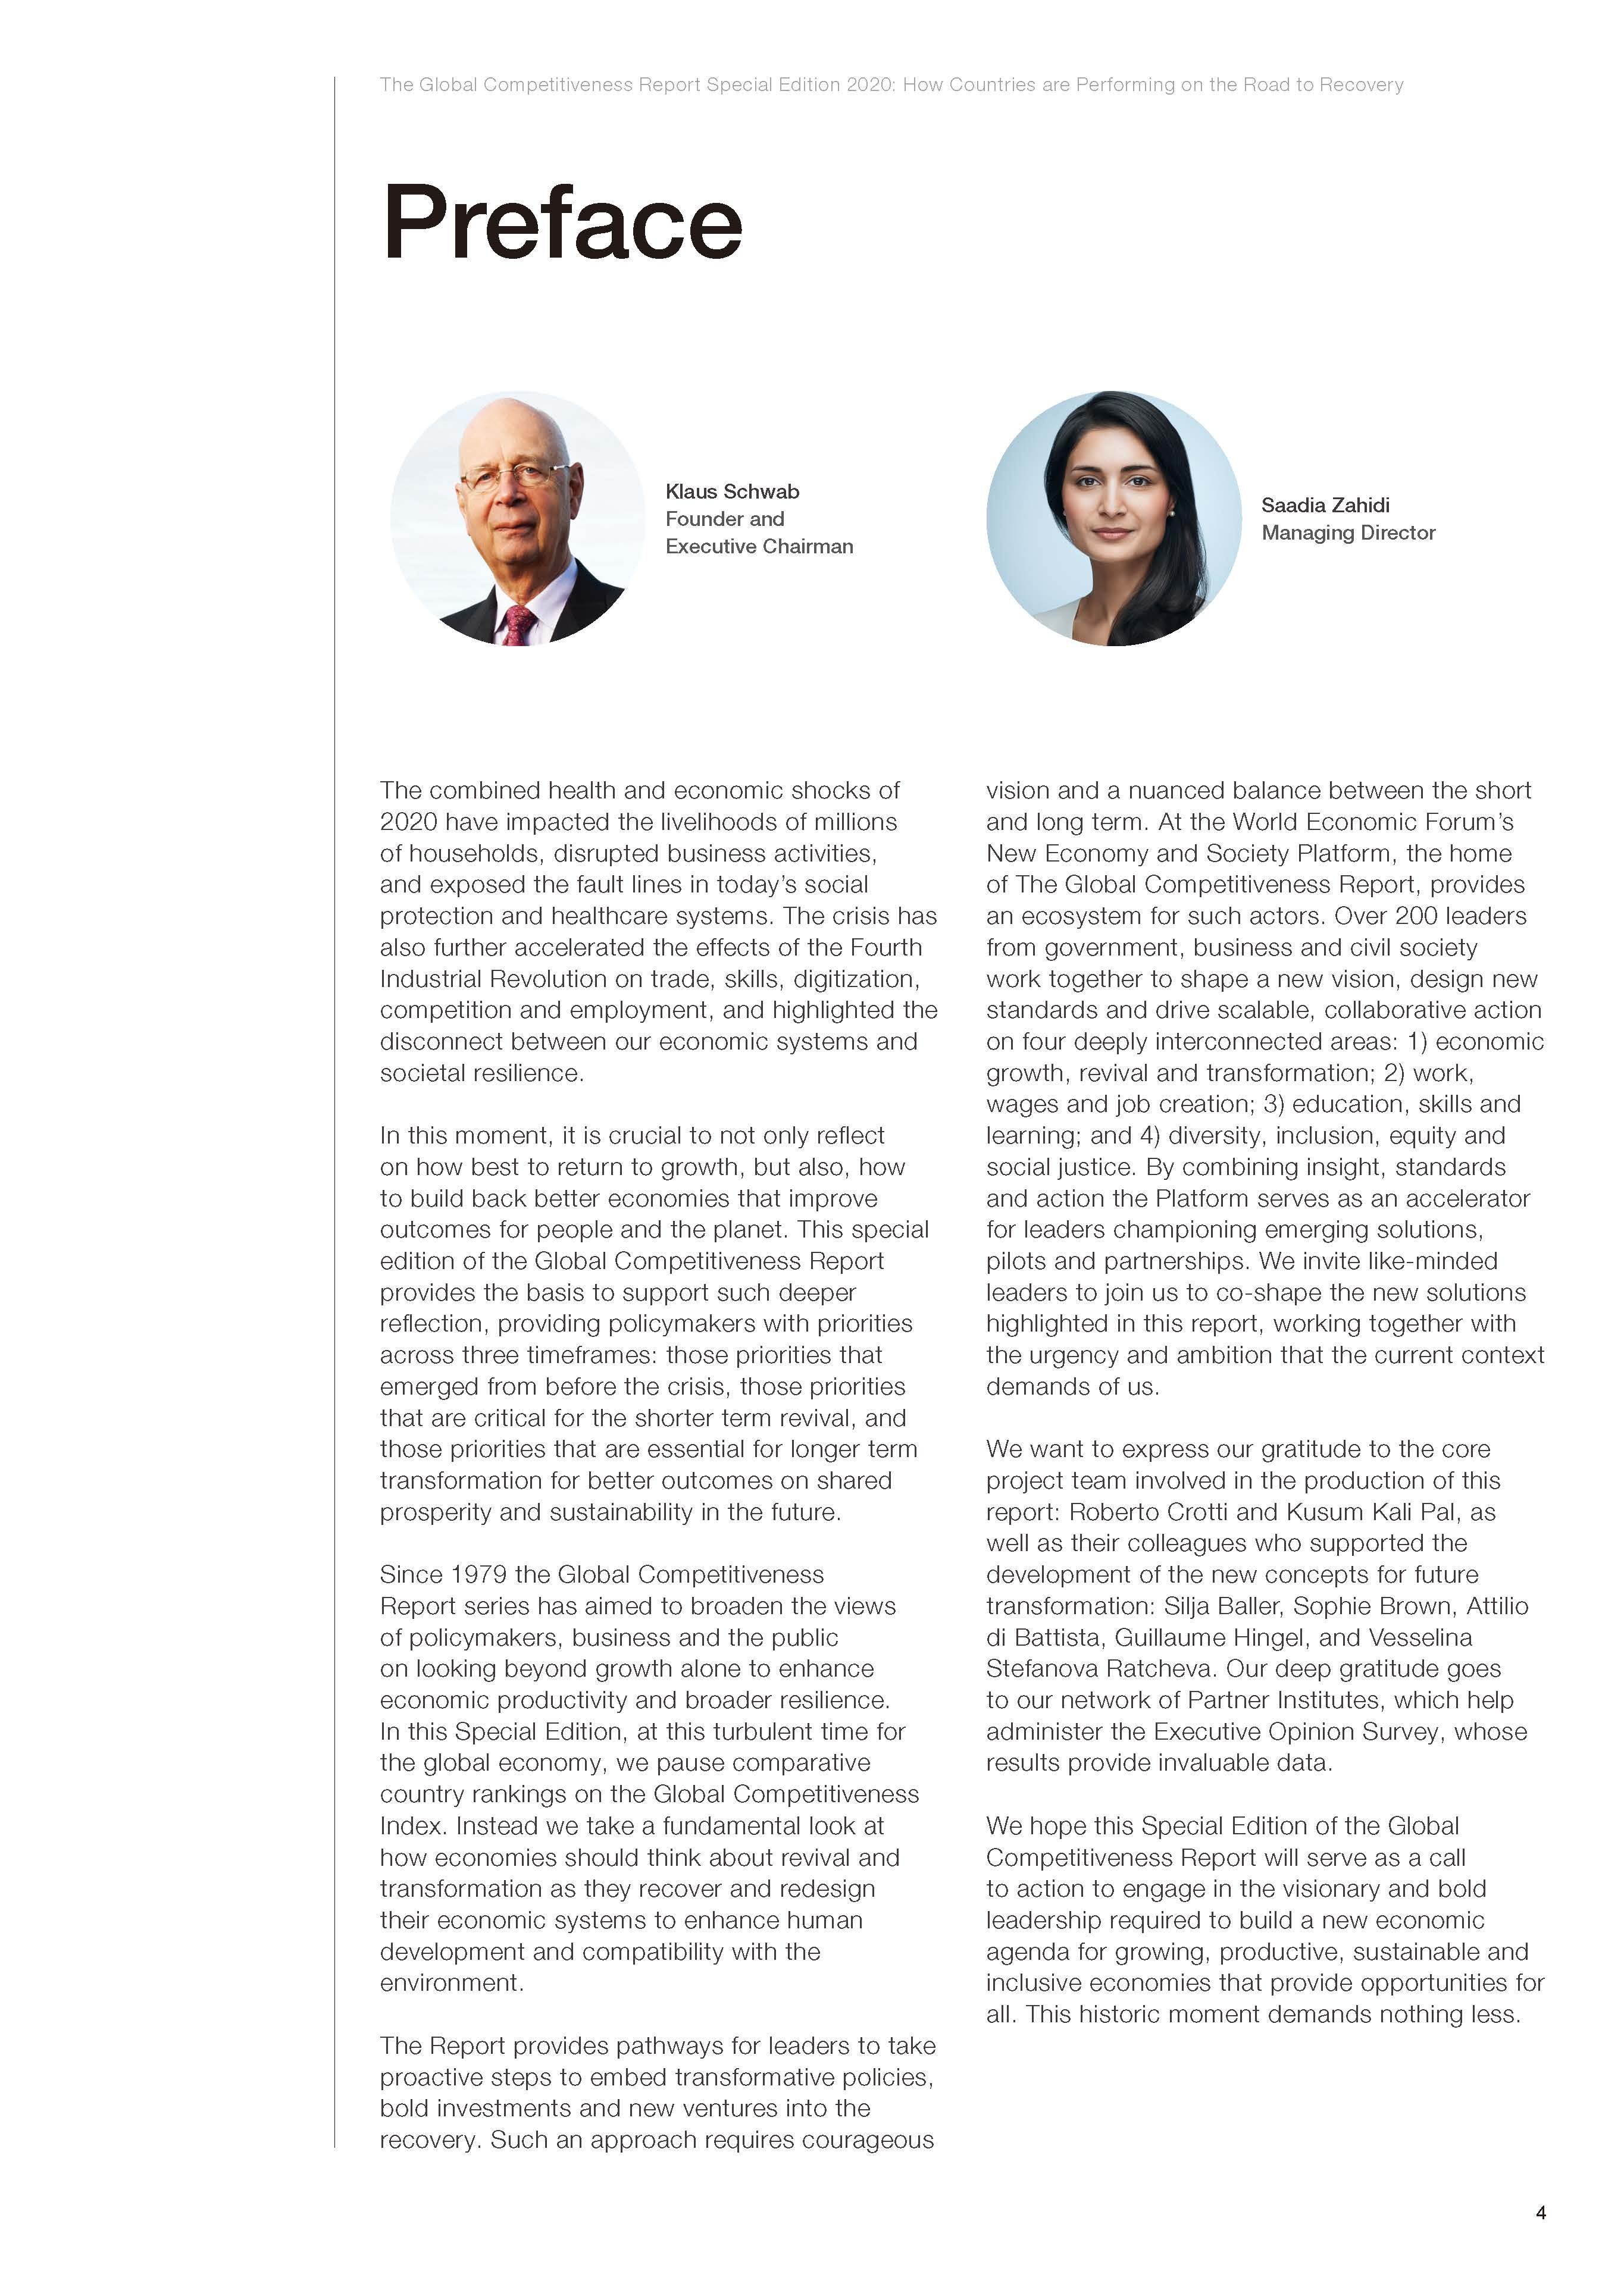 Global Competitiveness Report Special Edition 2020:How Countries are Performing on the Road to Recovery - World Economic Forum_页面_04.jpg